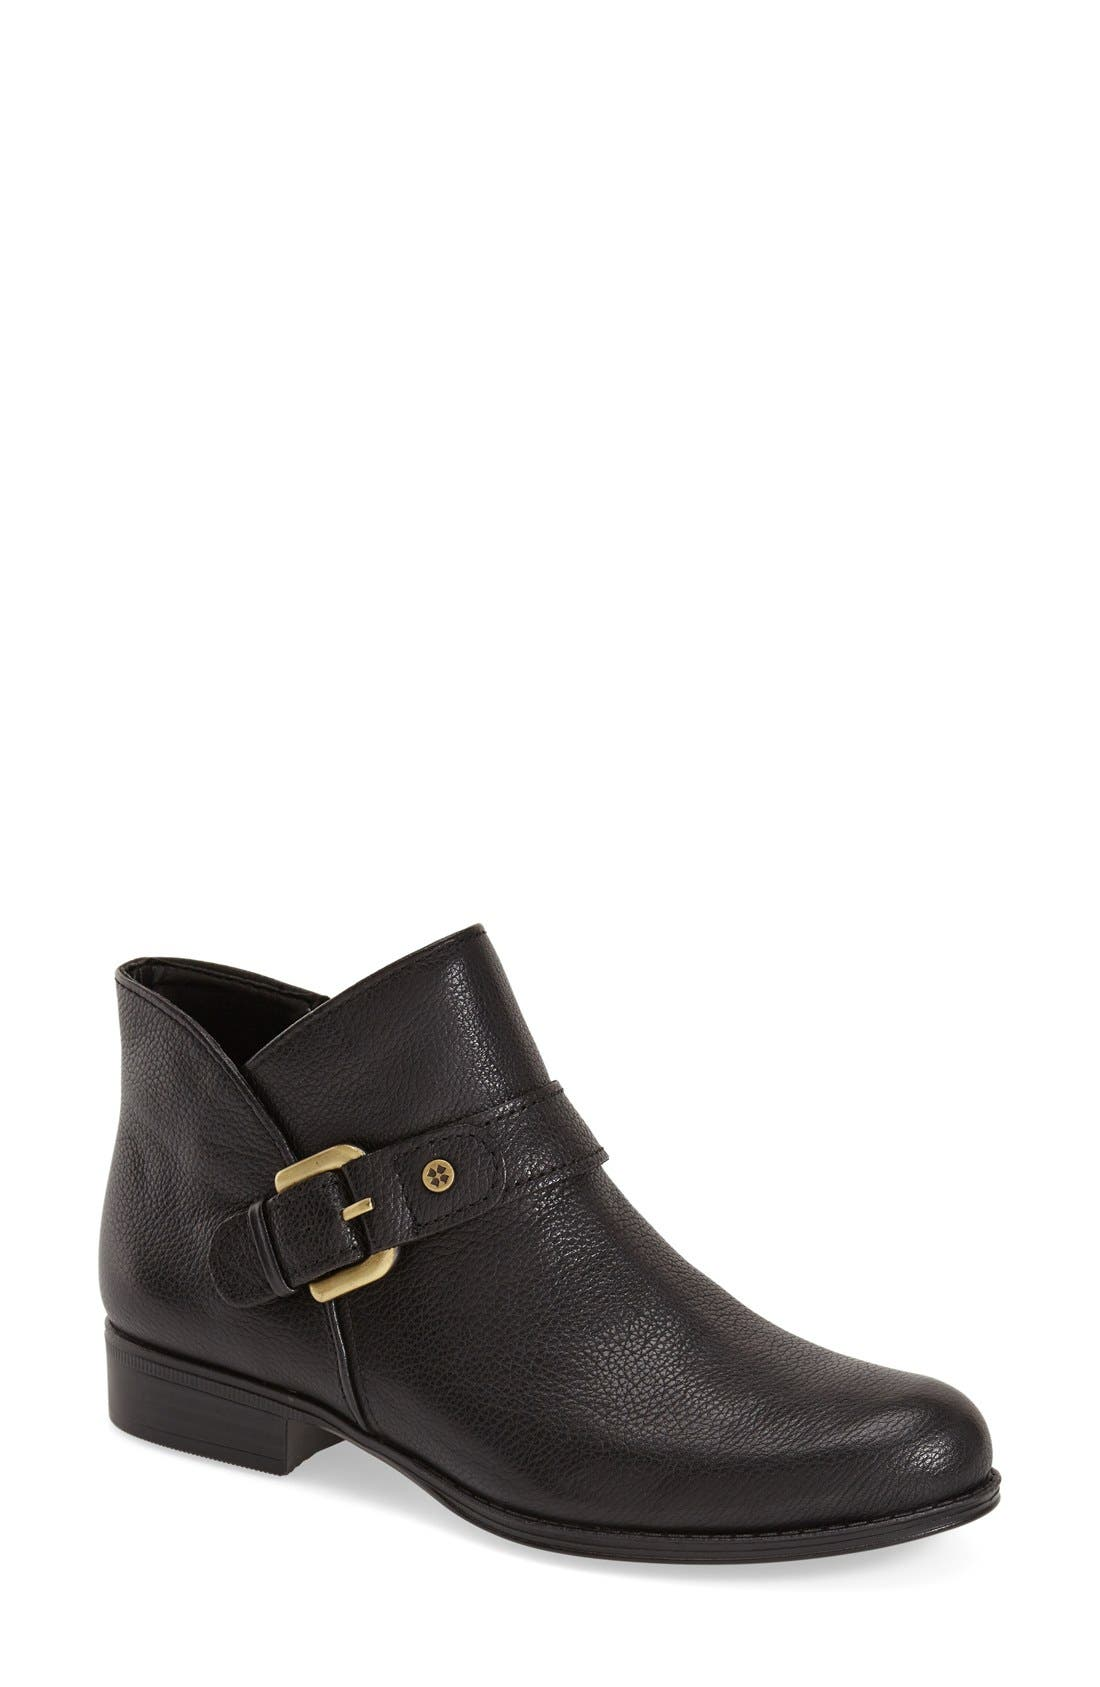 Main Image - Naturalizer 'Jarrett' Buckle Bootie (Women)